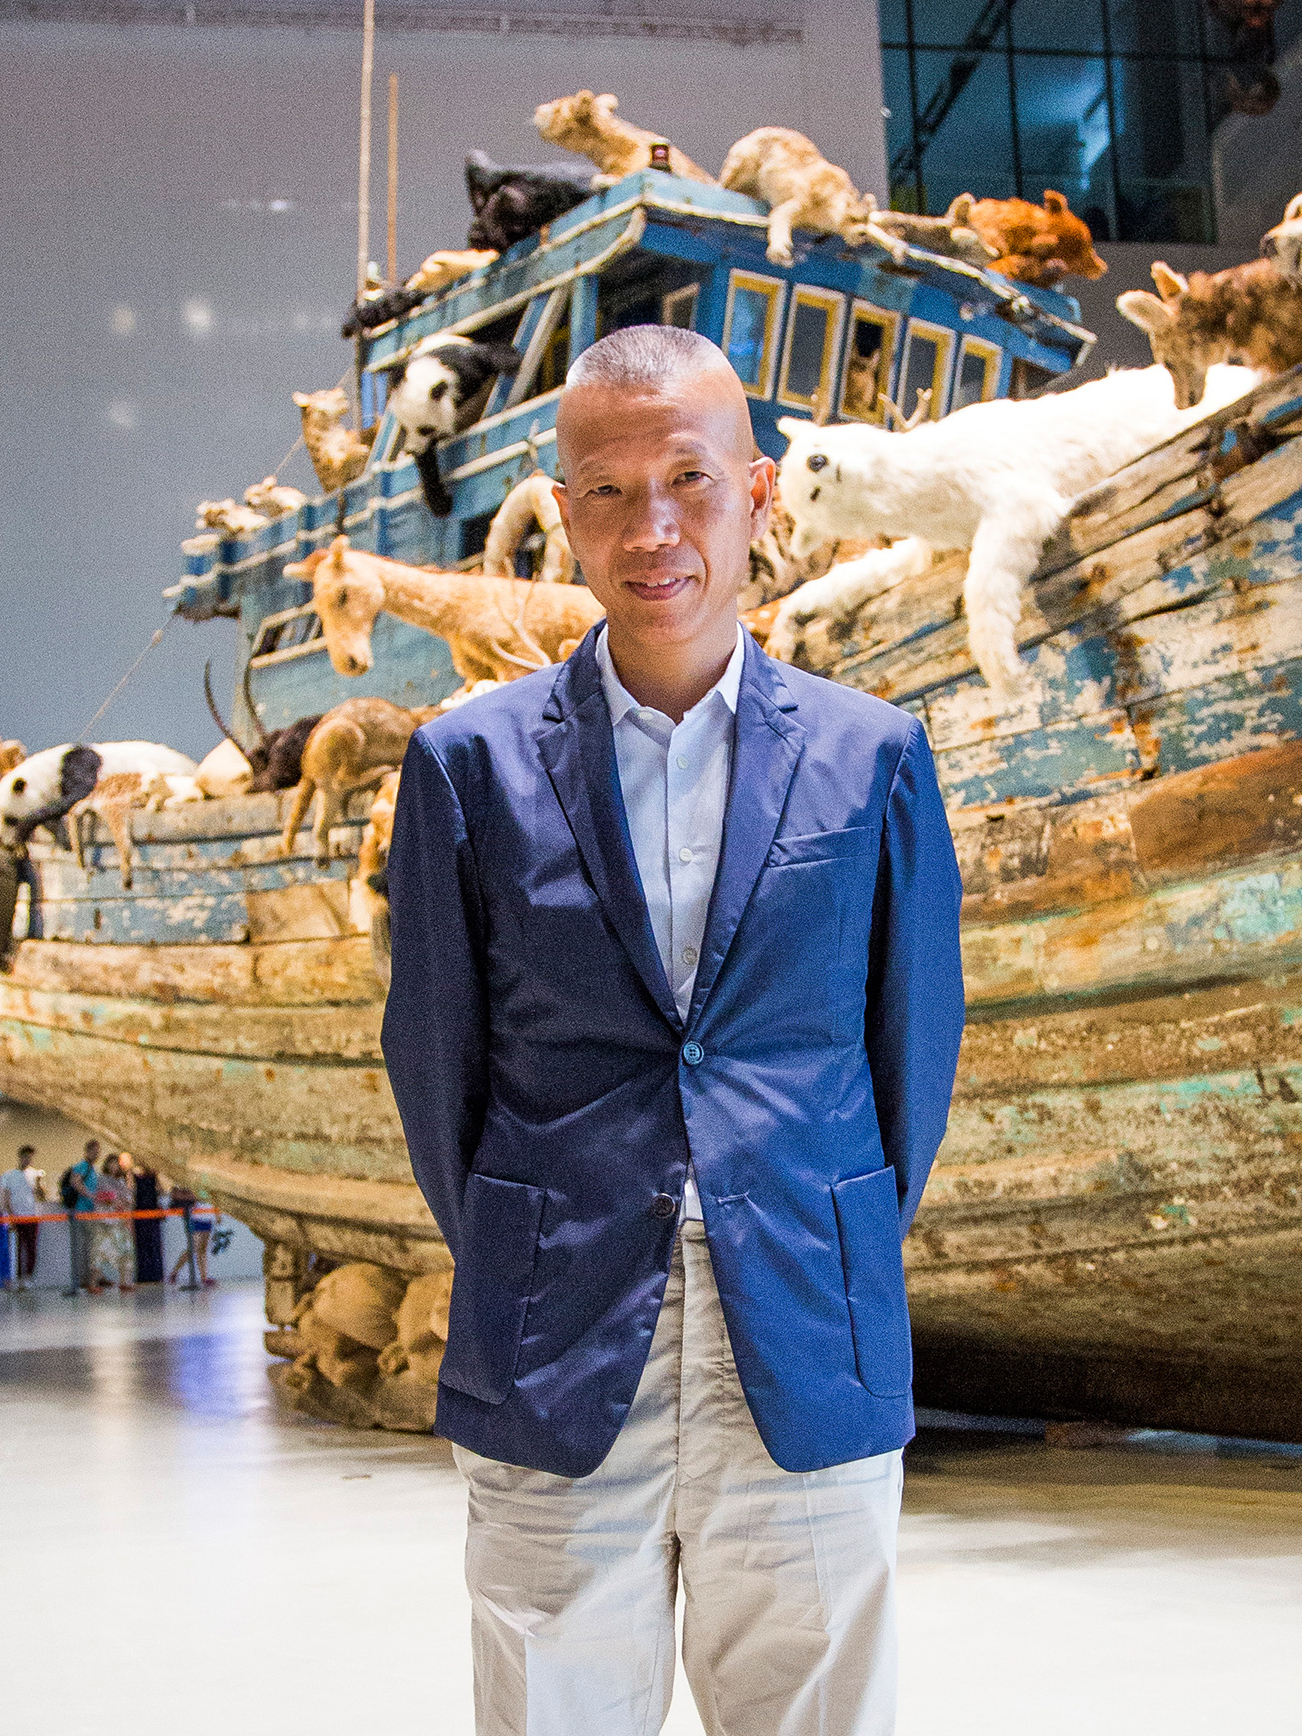 Artist Cai Guo-Qiang says much of his work is inspired by environmental conditions in China.